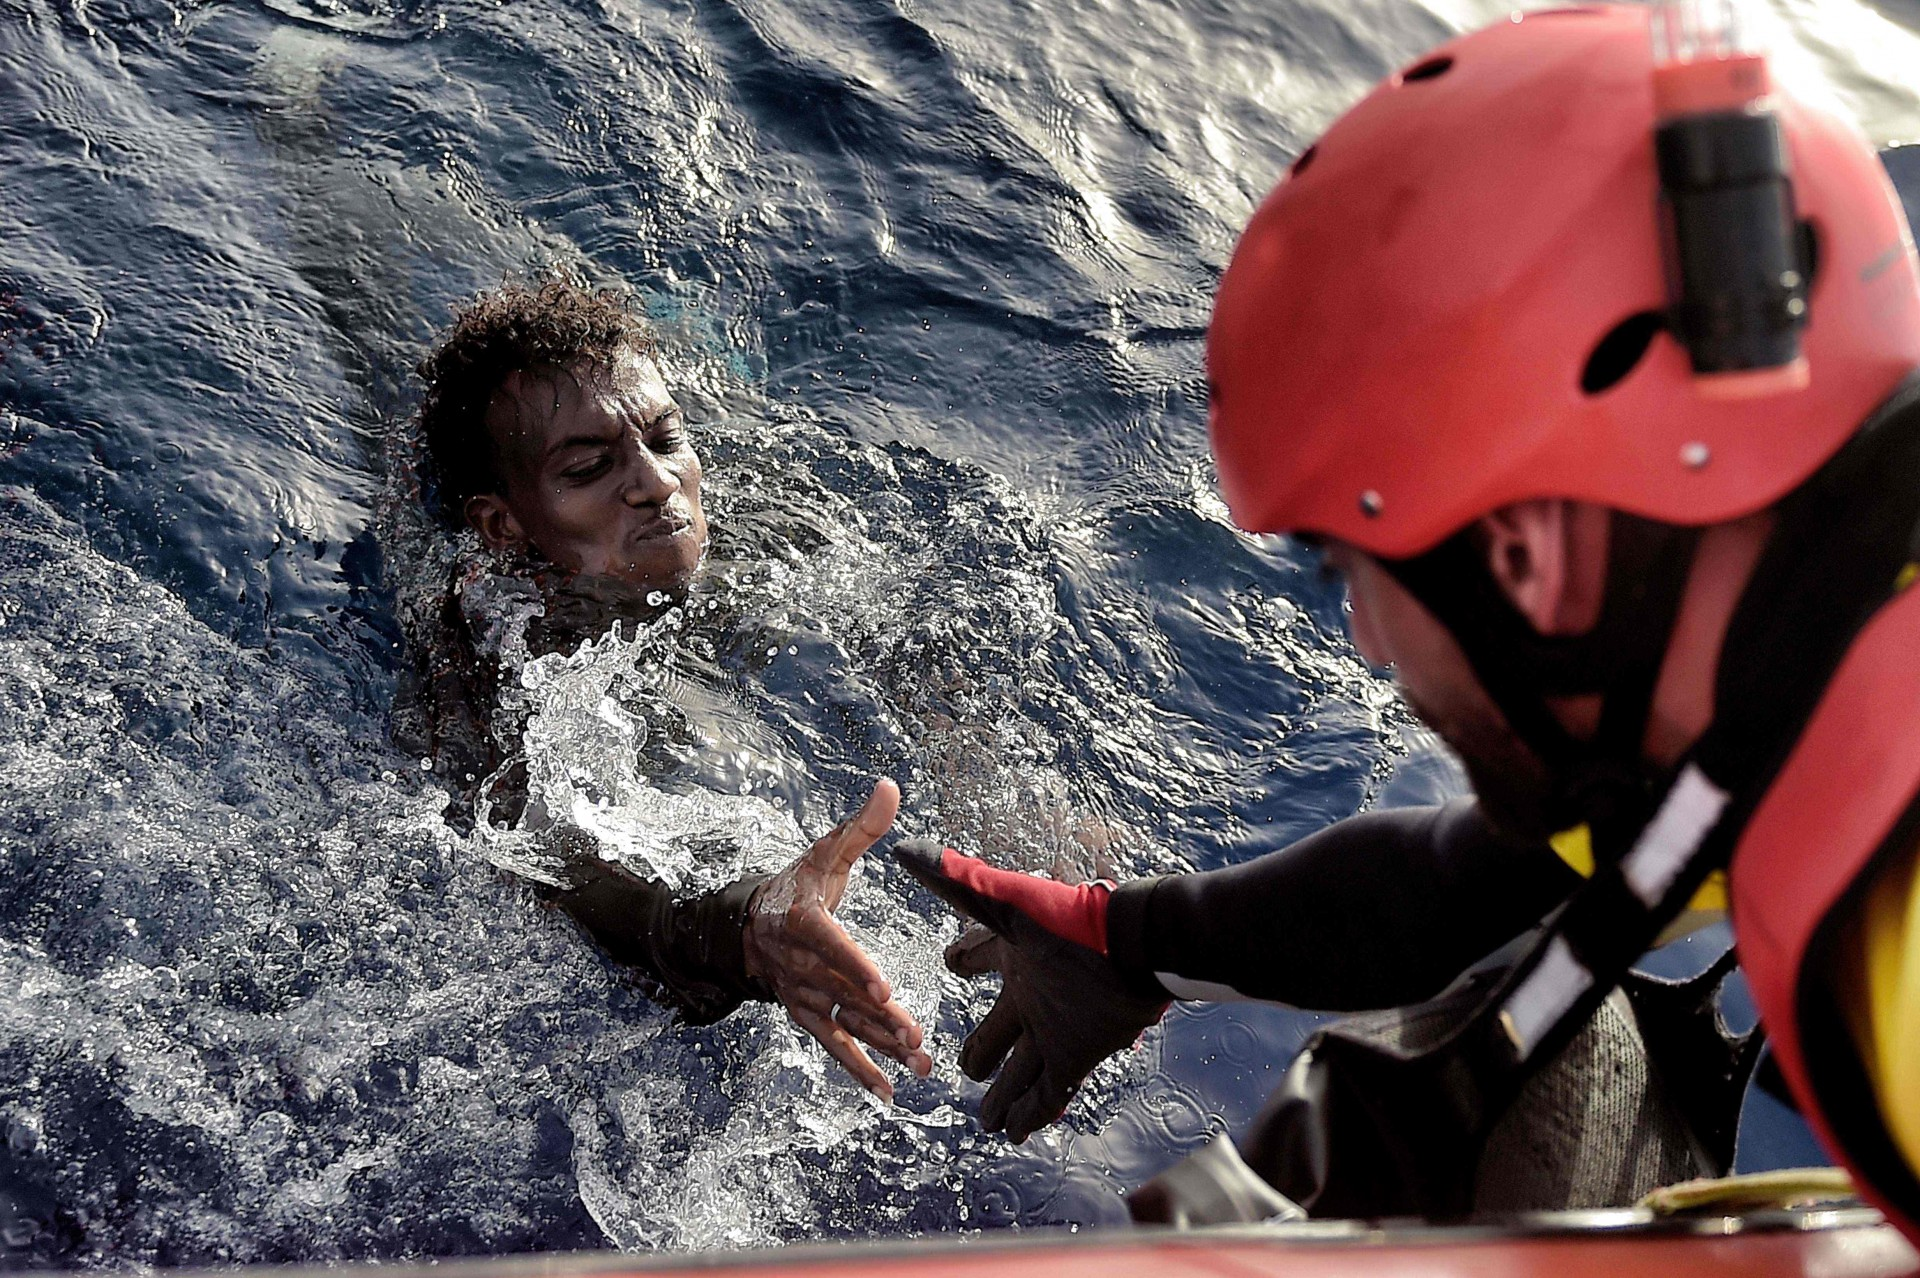 "TOPSHOT - A migrant is rescued from the mediteranean sea by a member of Proactiva Open Arms NGO some 20 nautical miles north of Libya on October 3, 2016.  Thousands of migrants are ""racing against the clock"" to make the perilous crossing from Libya to Europe before summer ends, with authorities in the conflict-torn country at a loss to stem the flow. / AFP PHOTO / ARIS MESSINIS"